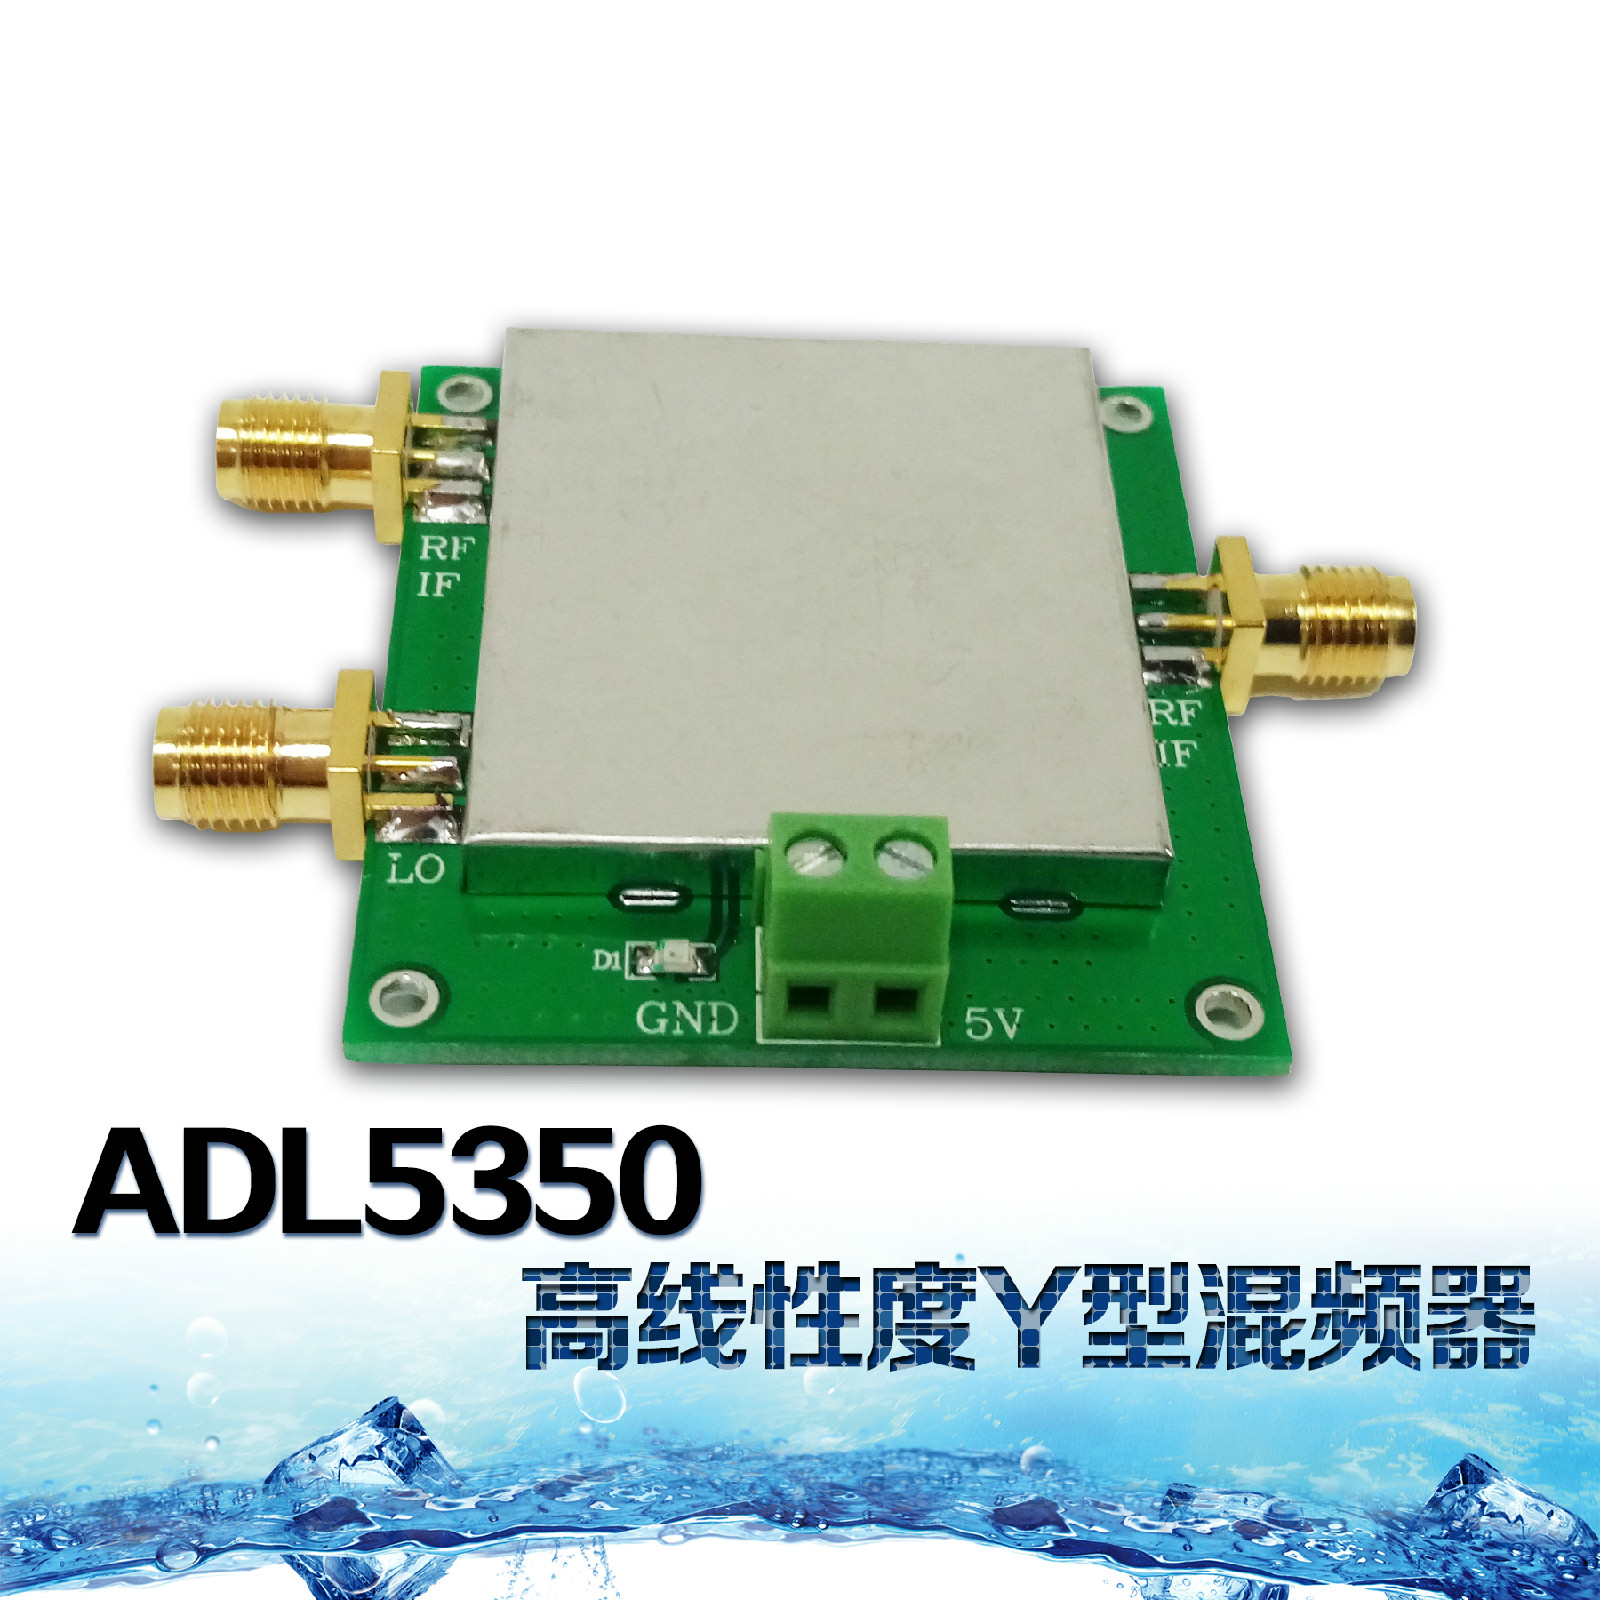 NEW ADL5350-EVALZ low-frequency to 4 GHz high linearity Y-mixer module